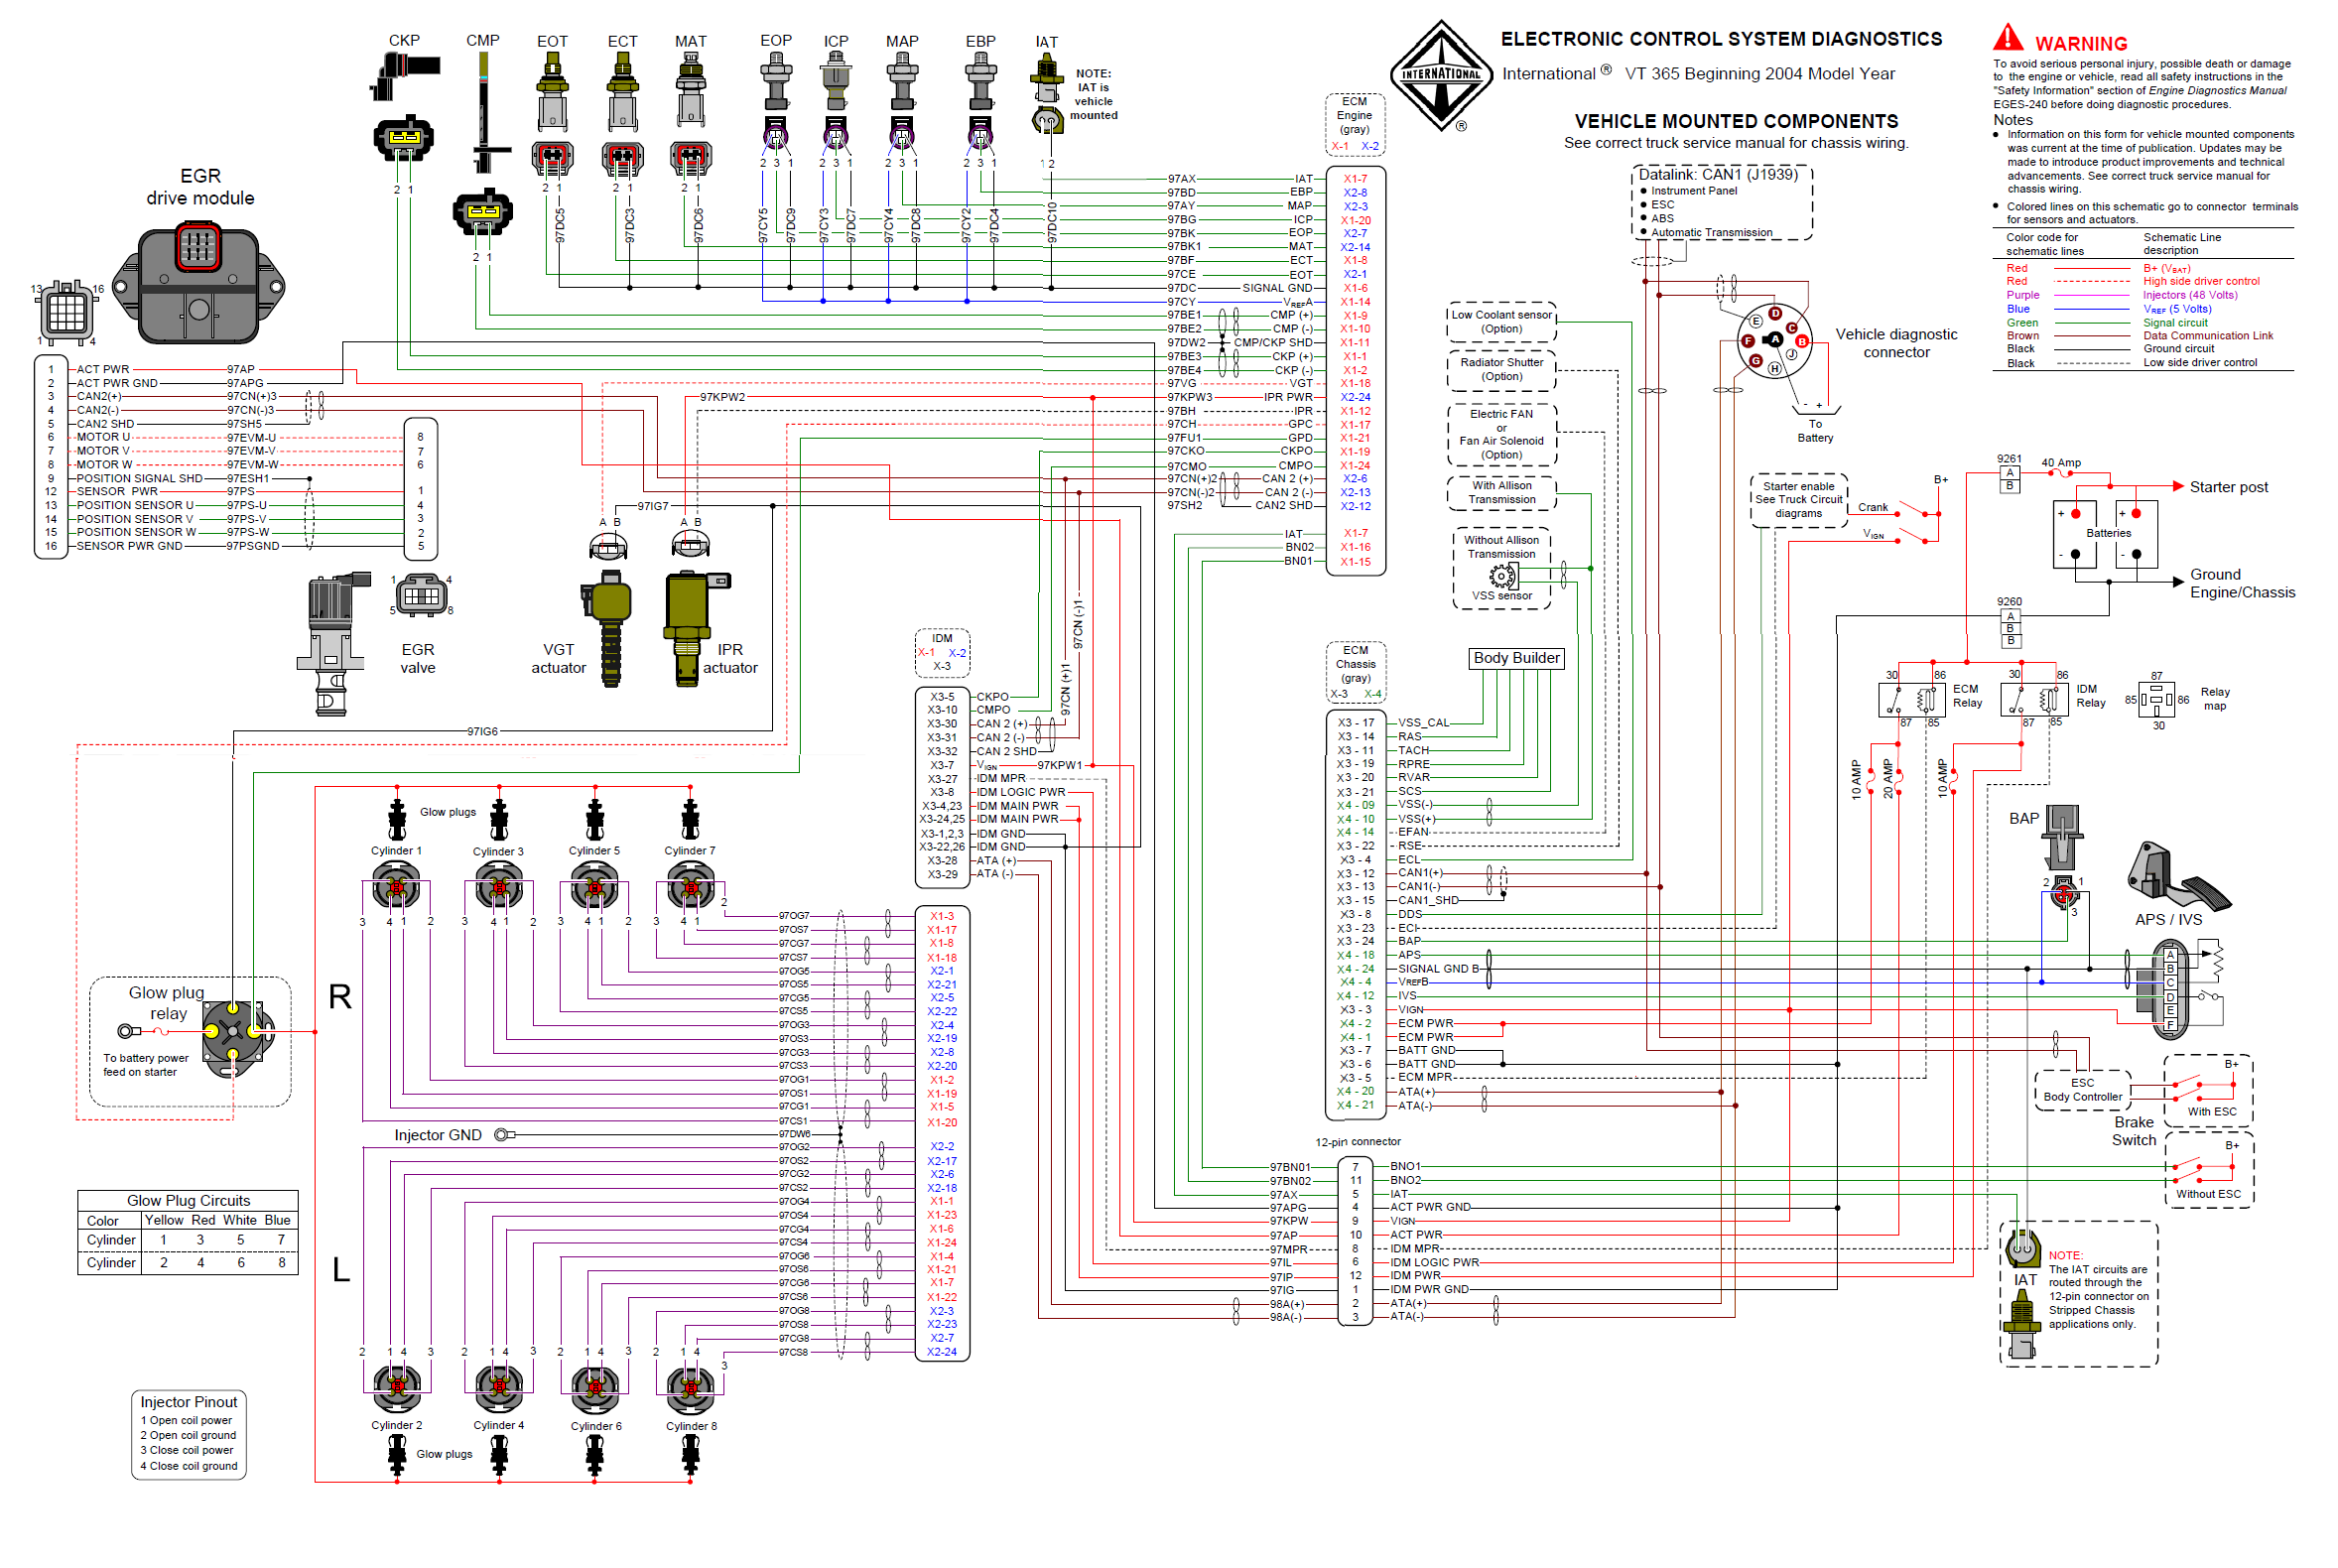 2006 international 4200 vt365 wiring diagram 2006 wiring i have a 2006 international 4200 vt365 and code 254 221 high